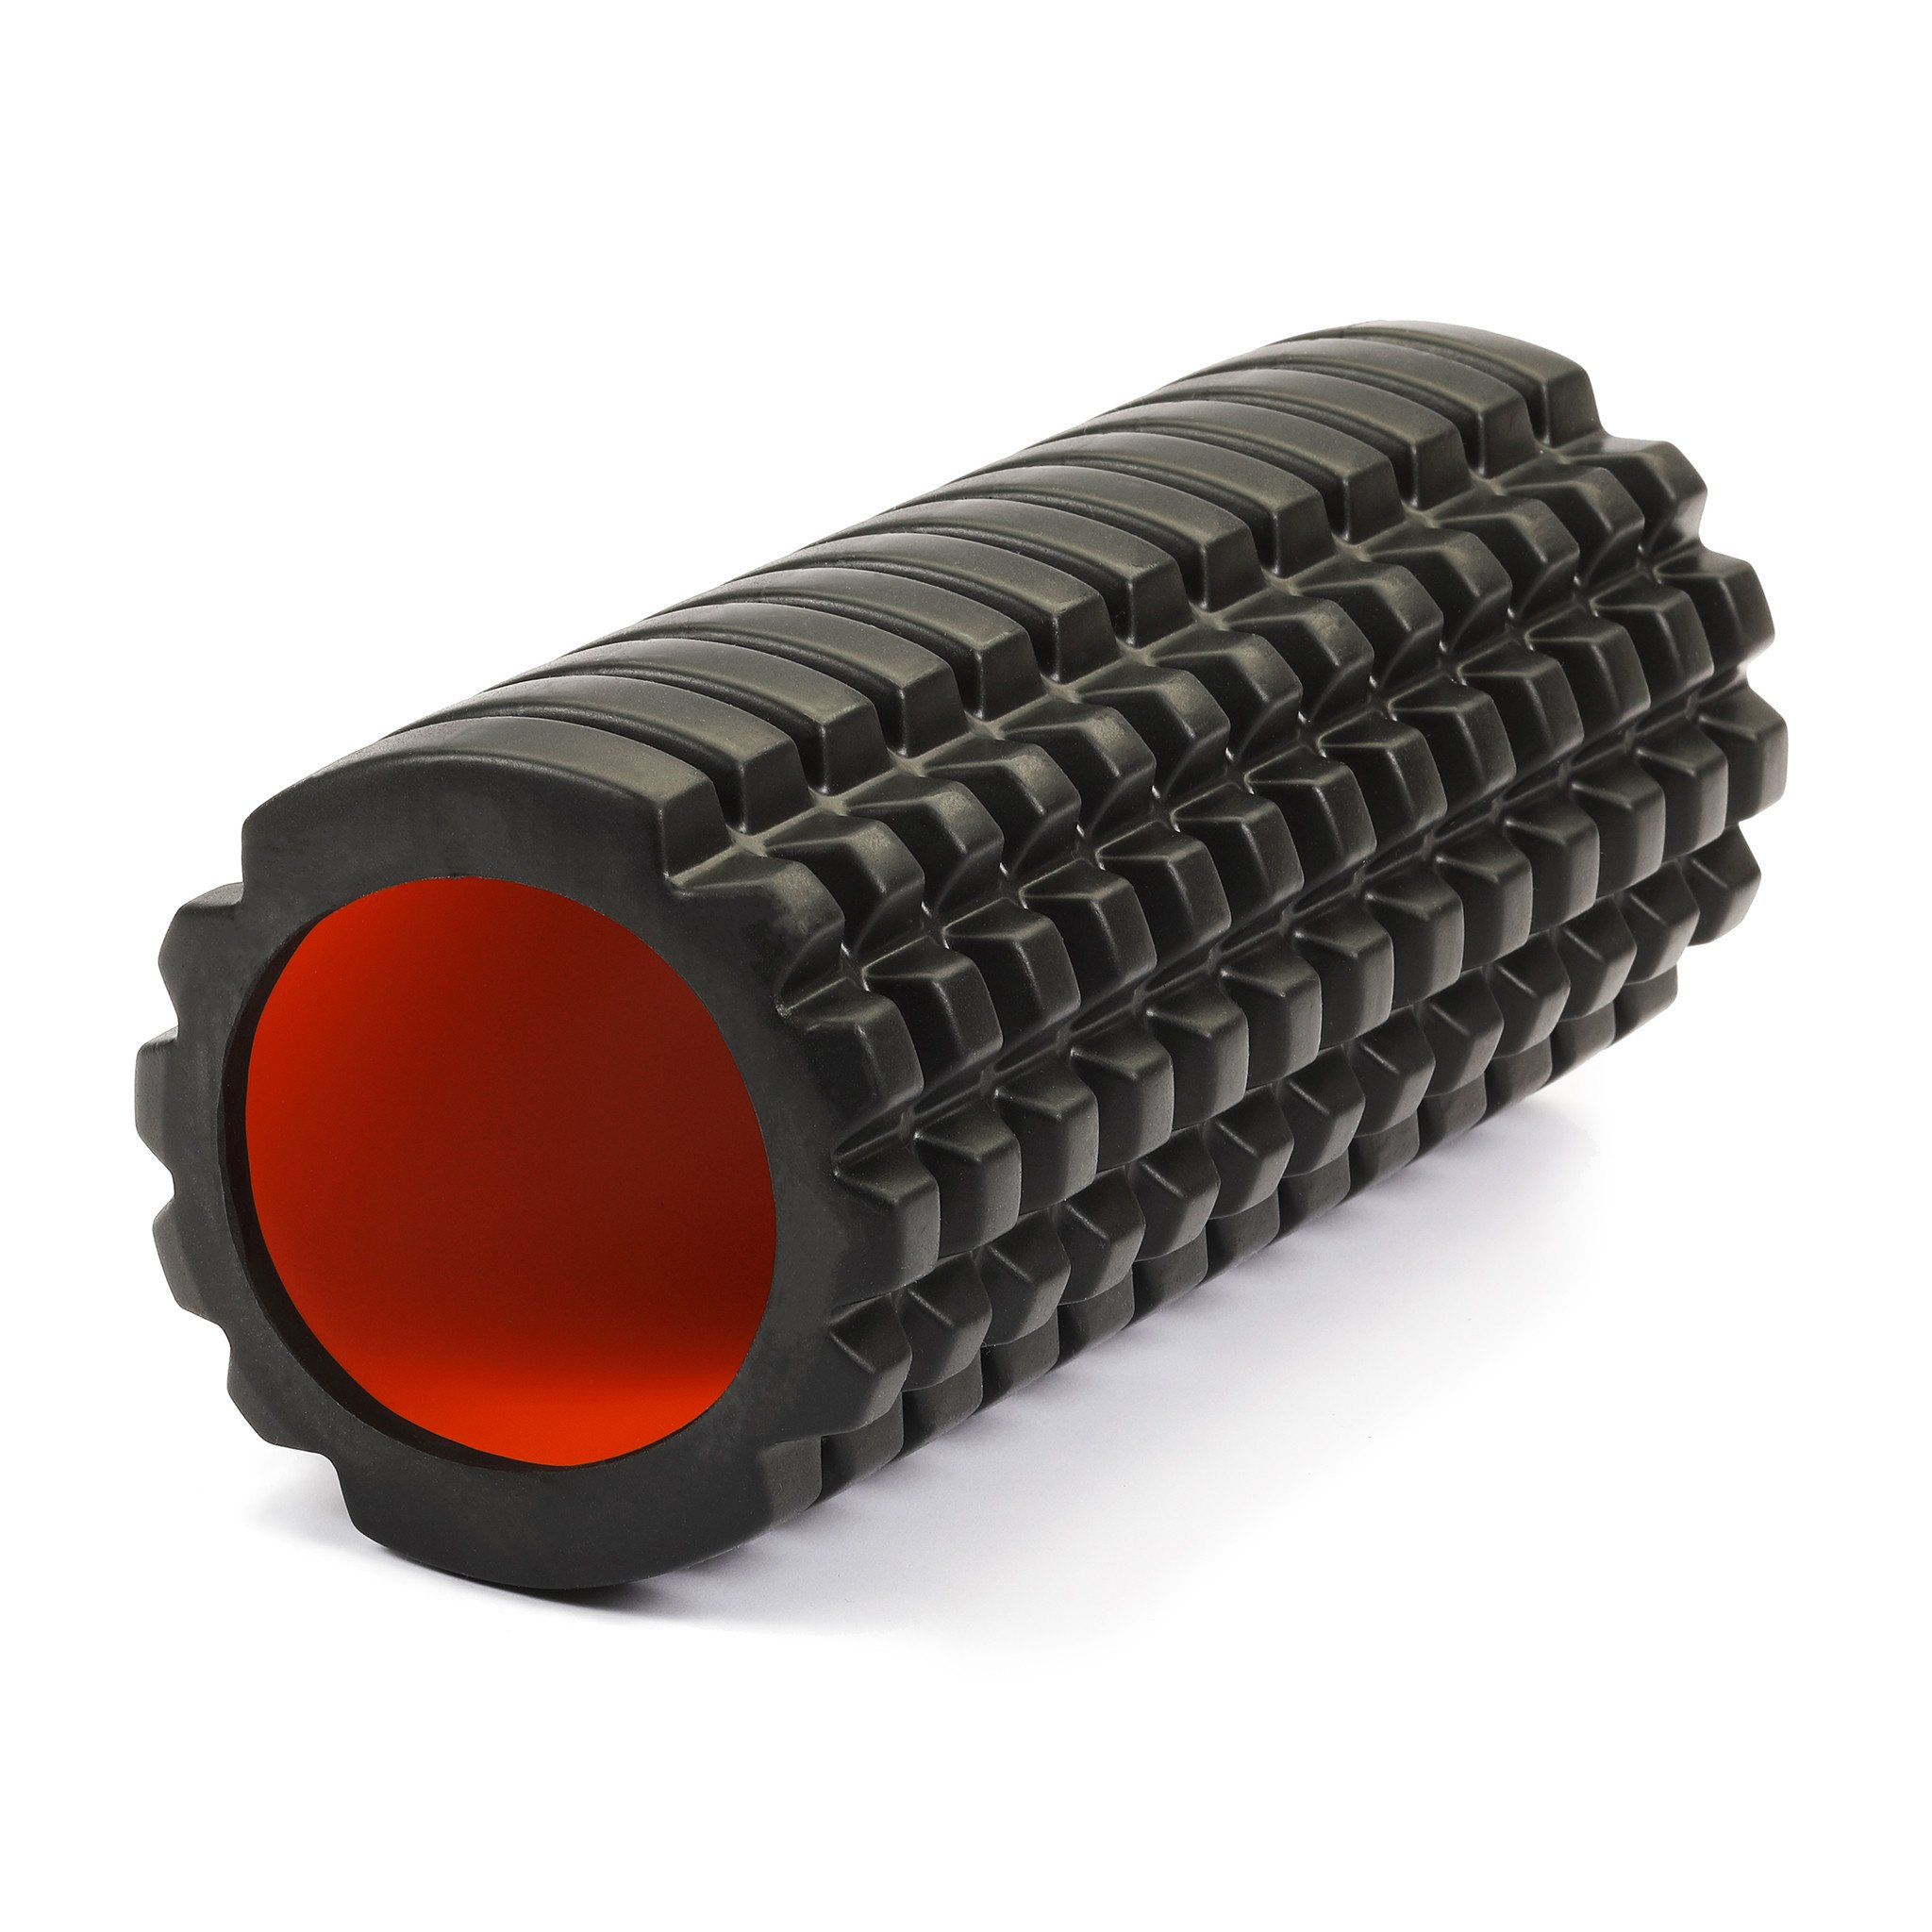 "Foam Roller for Physical Therapy & Massage - High Density Foam Muscle Roller for Back Pain, Athletes, Sports & Exercise, 13"" x 6 inch"